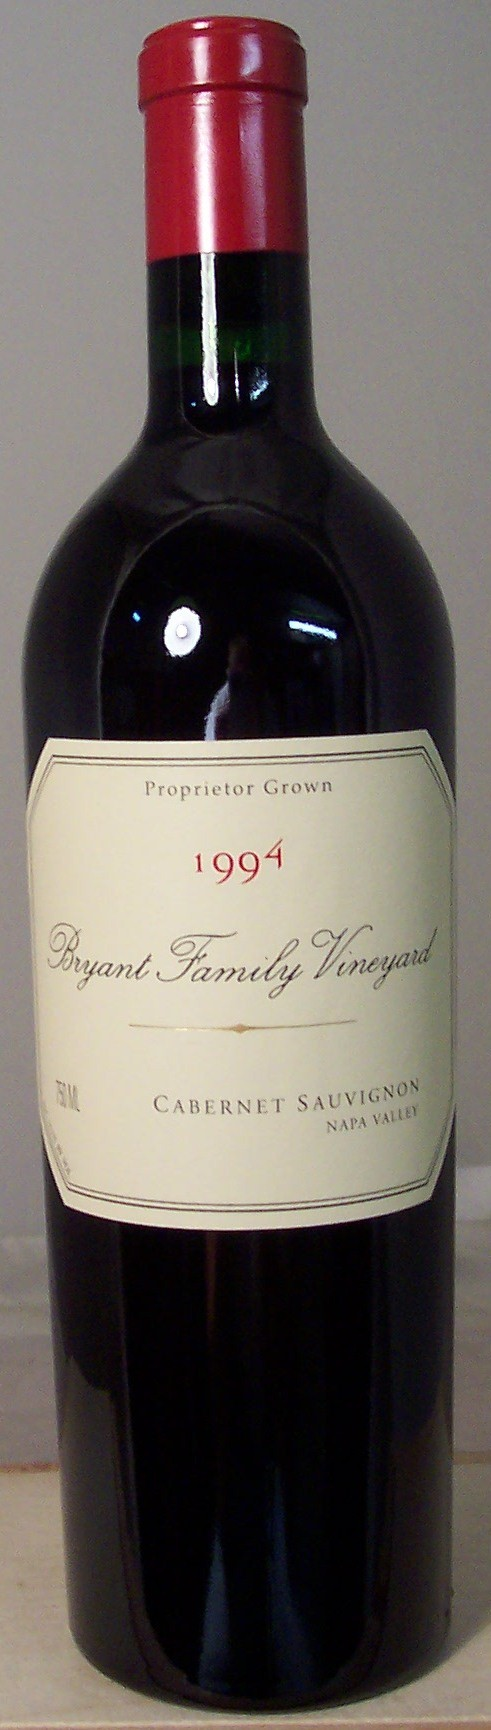 Bryant Family Vineyard Cabernet Sauvignon Napa Valley 1994